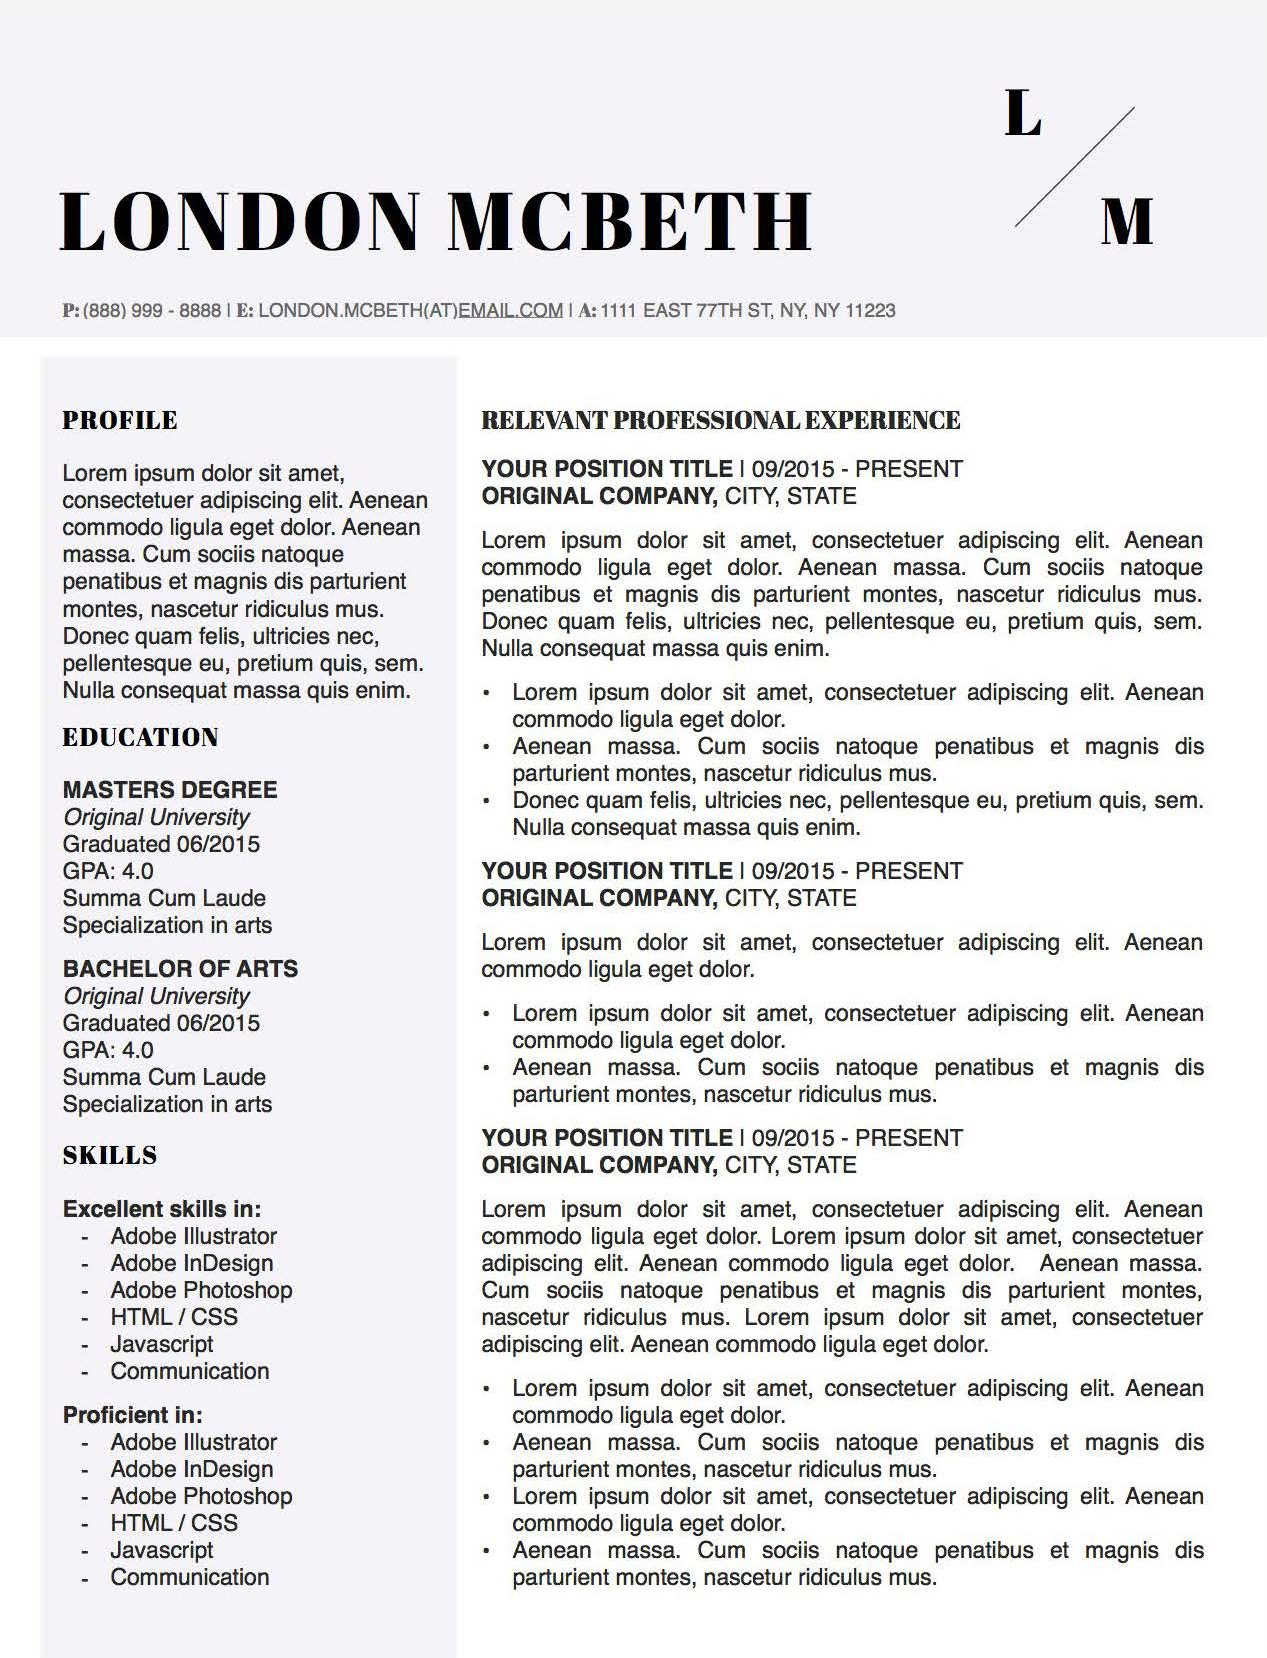 London McBeth - Downloadable Resume Template for Microsoft Word and Apple Pages